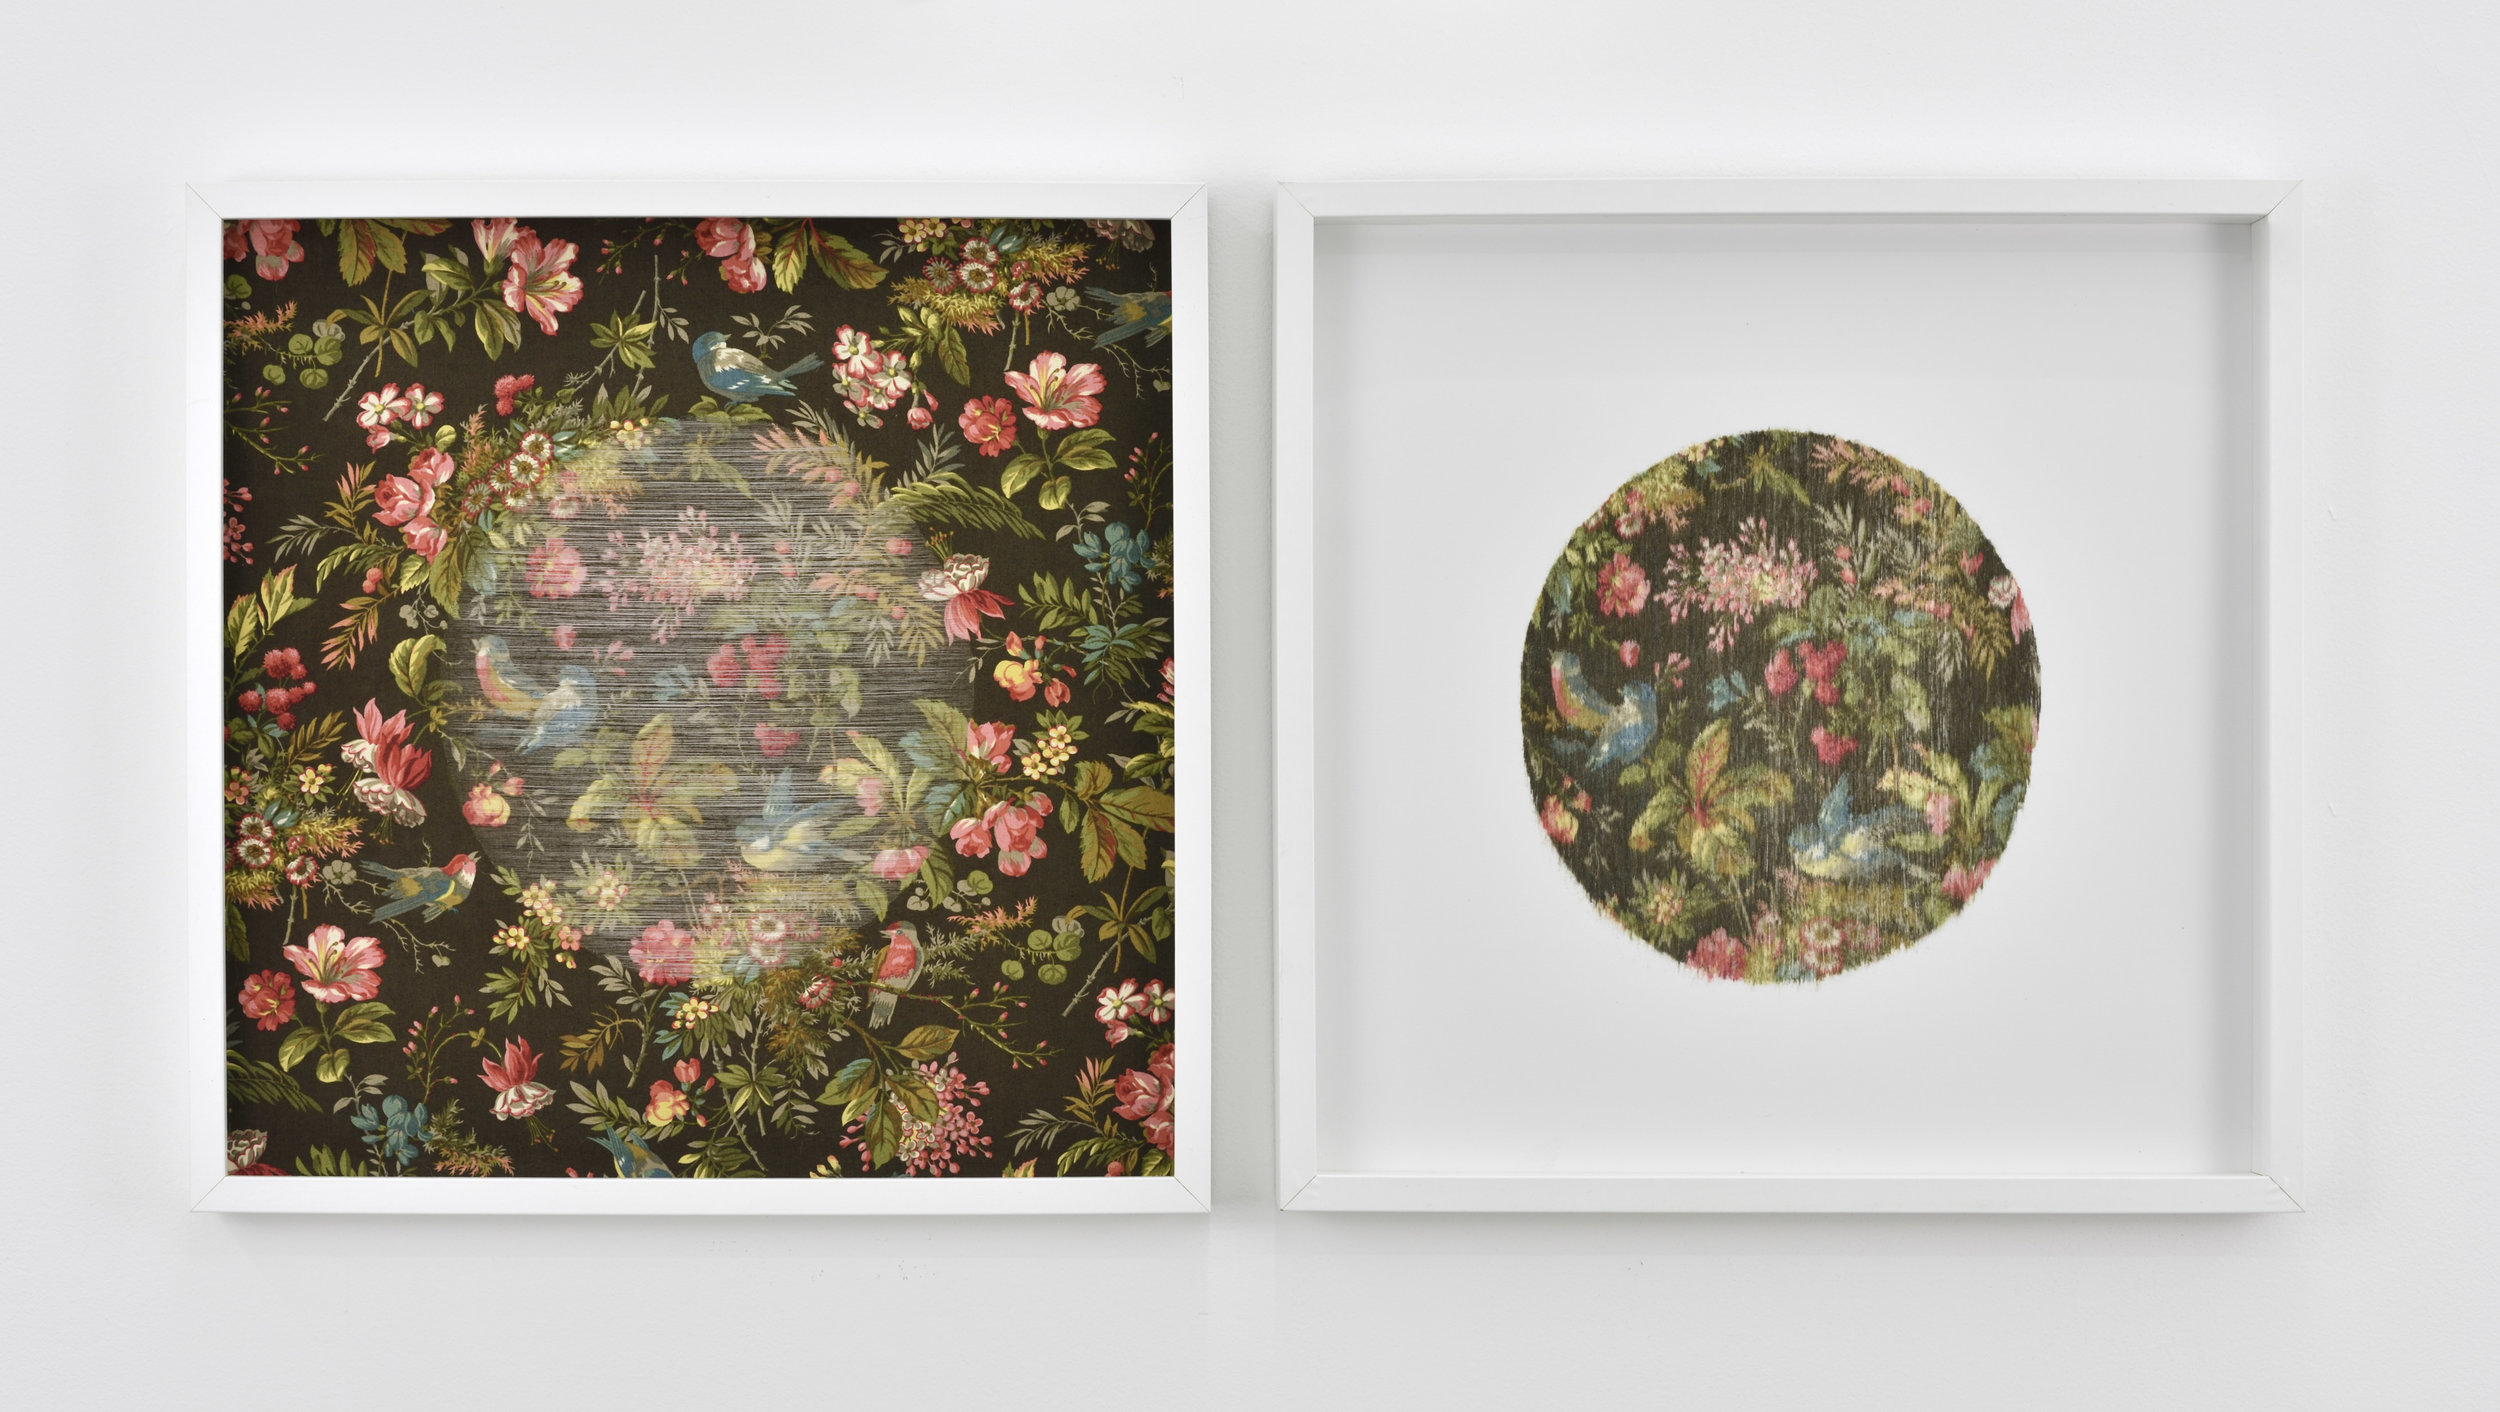 Golnaz Payani Double-cercle, 2018 fabric, paper, wood and glass 19 11/16 x 19 11/16 in (each) (50 x 50 cm)